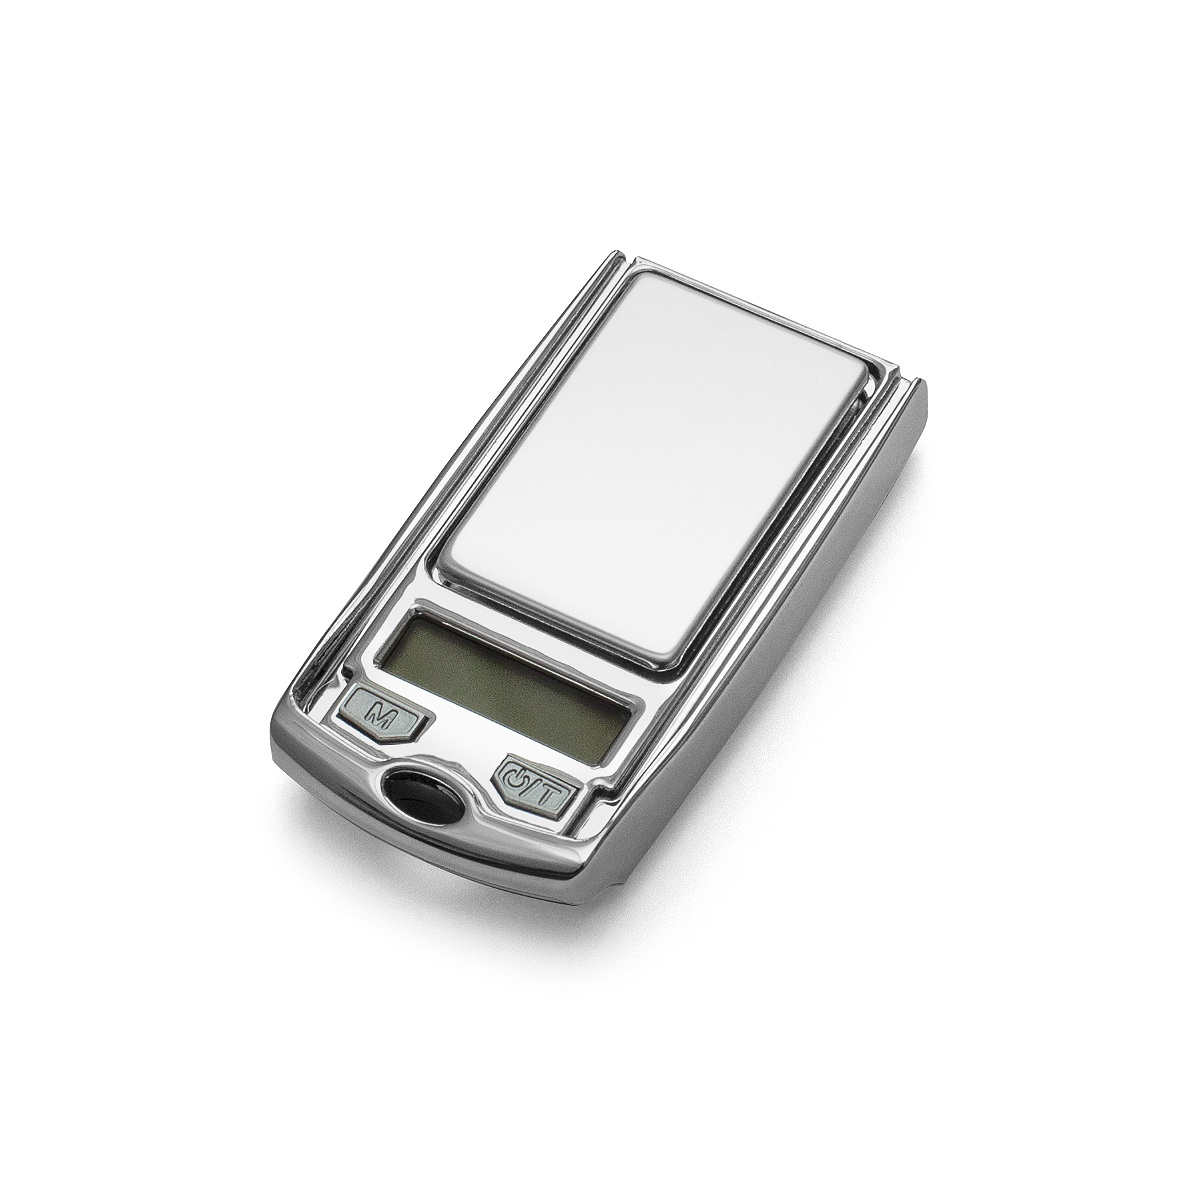 Mini digital scales (battery included)